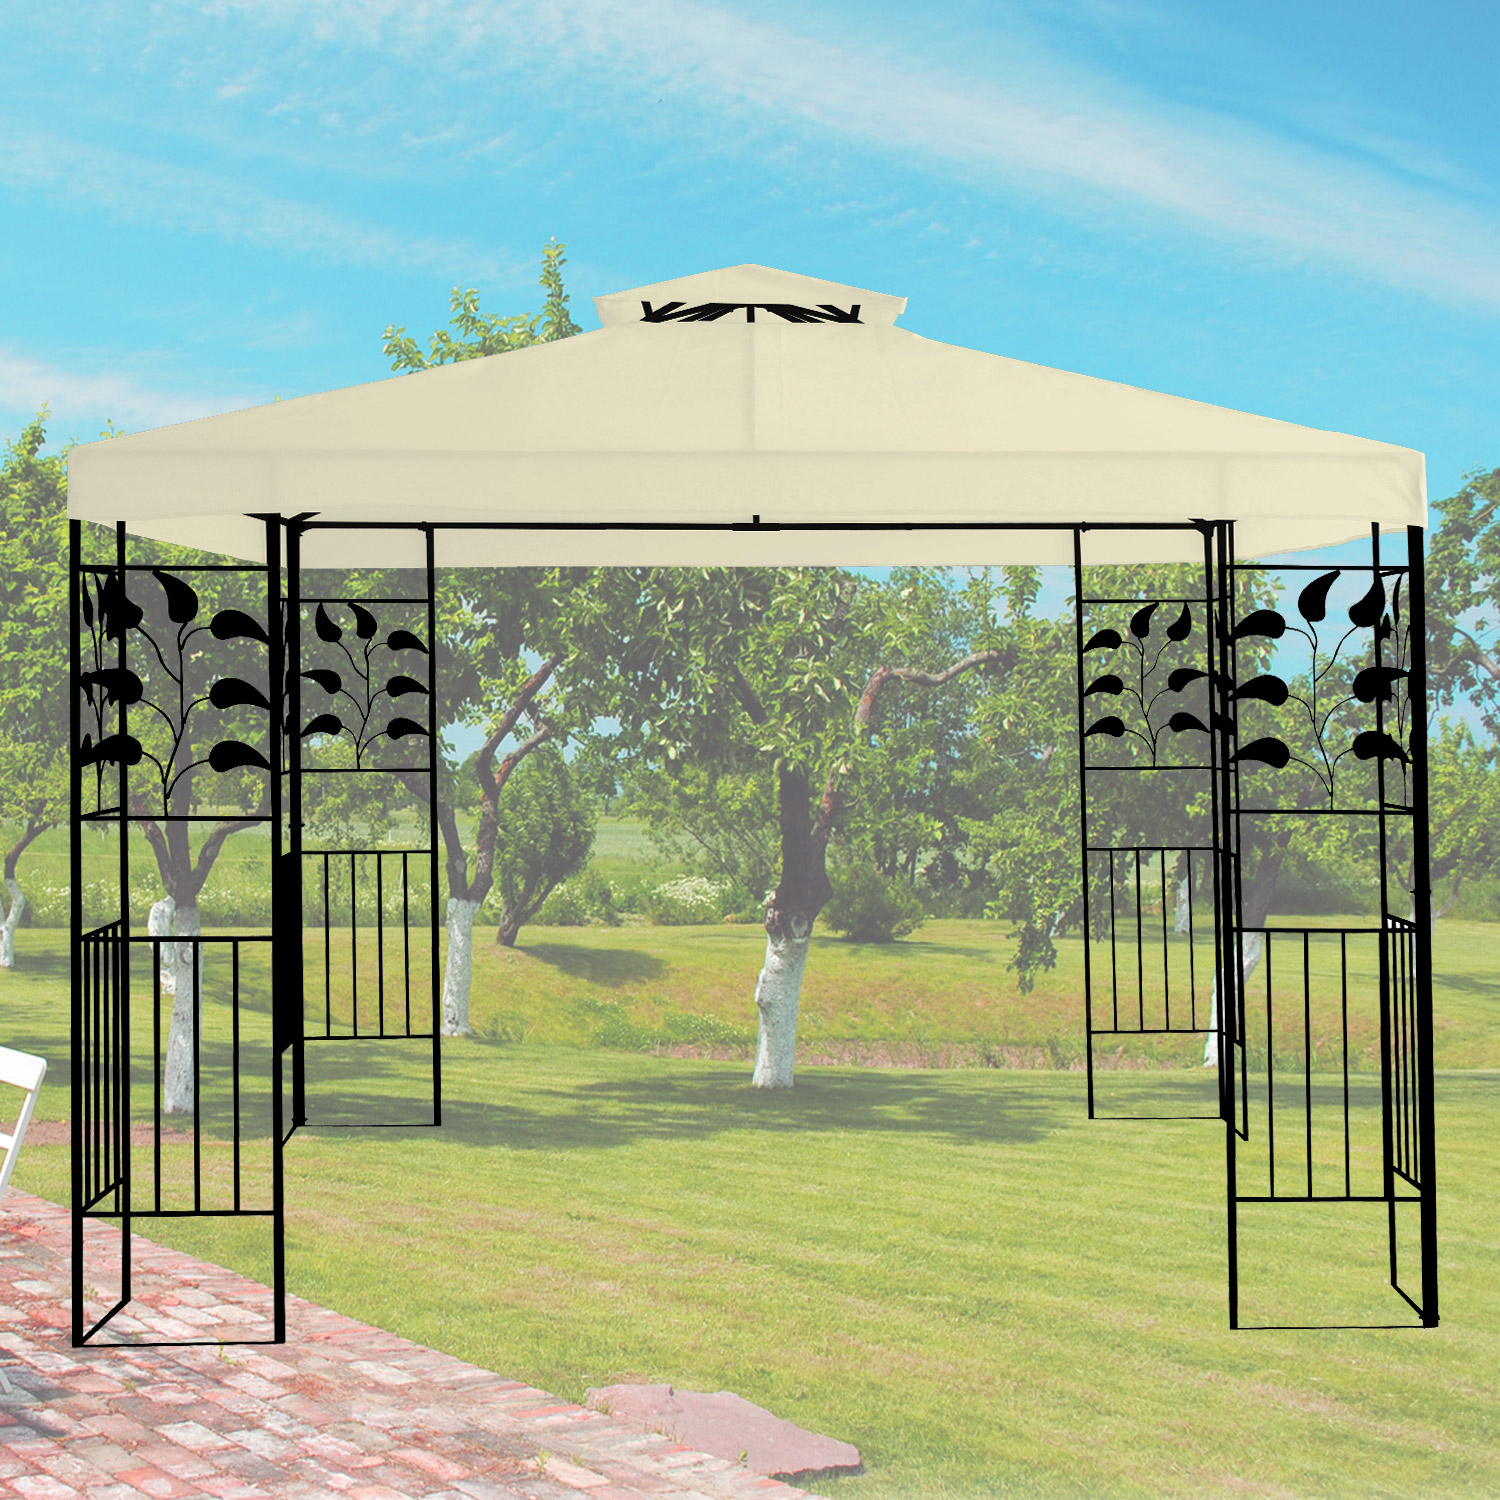 metall gartenpavillon 3x3 gazebo mit entl ftungsfunktion garten pavillon zelt. Black Bedroom Furniture Sets. Home Design Ideas